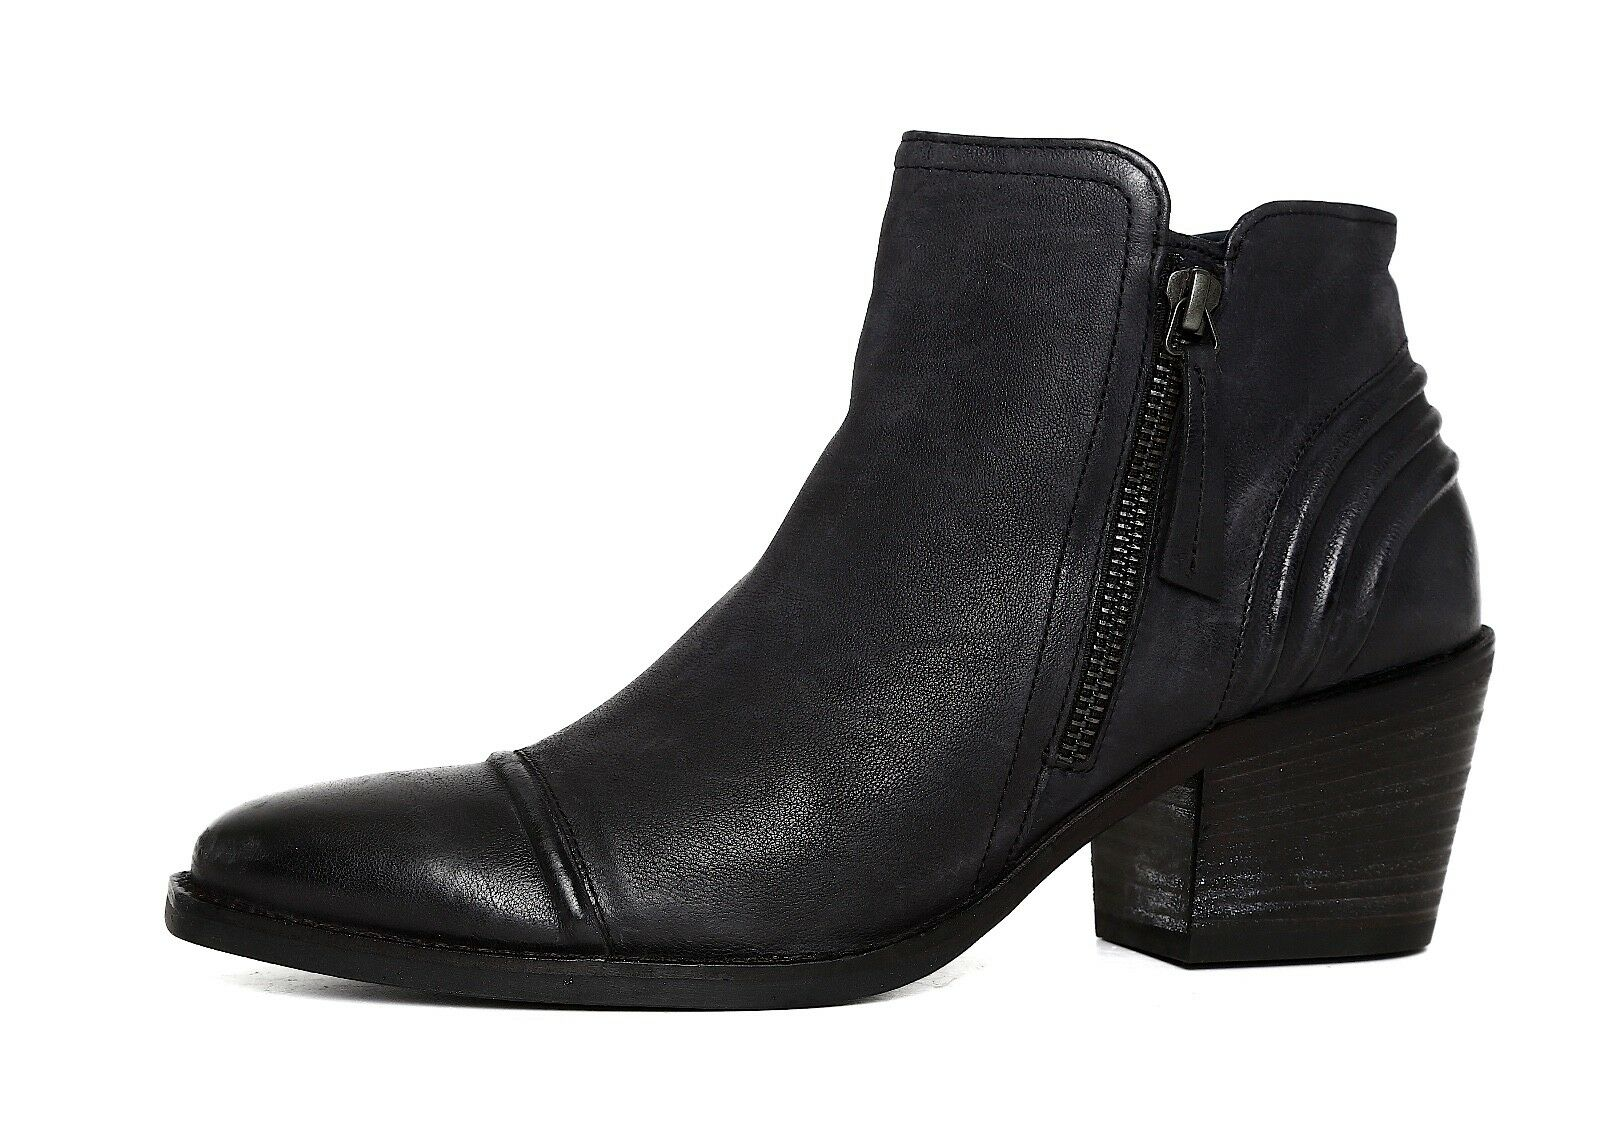 Paul Green Diandra Leather Ankle Bootie Black Women Sz 6 UK 5890